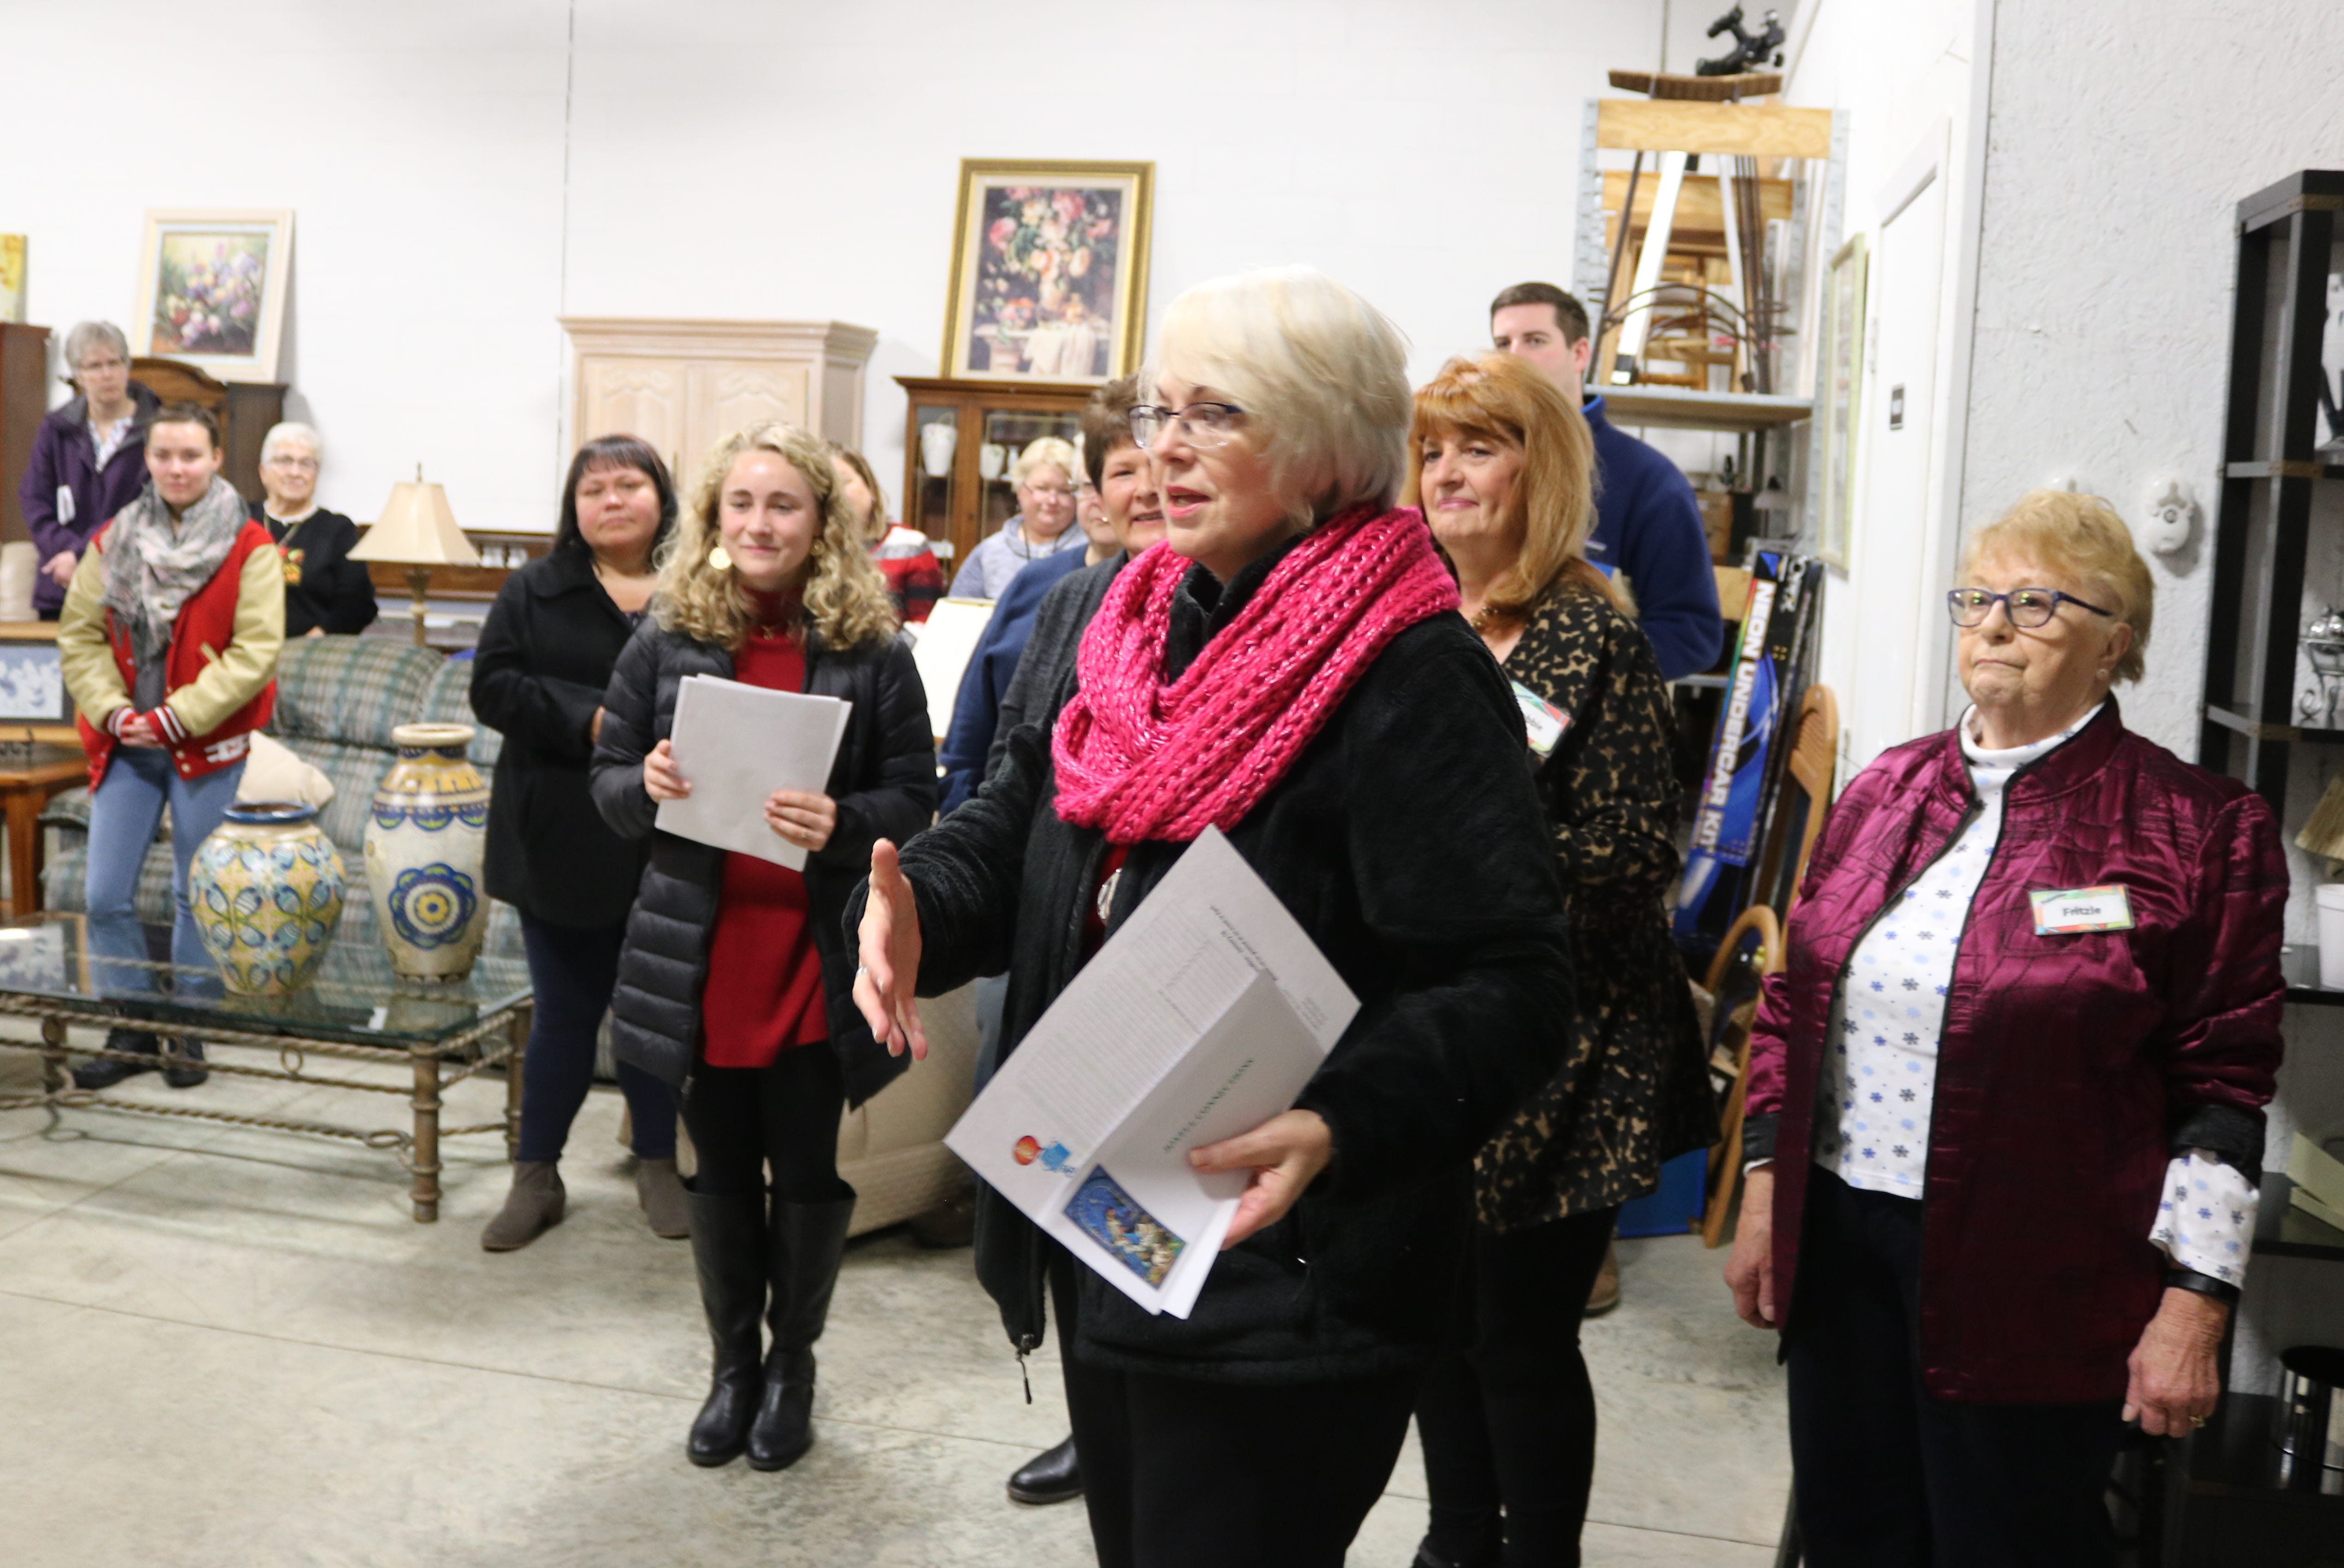 Sheila Powell, of Joyful Connections, discusses how much fun volunteering for the Portage Resale Center can be.